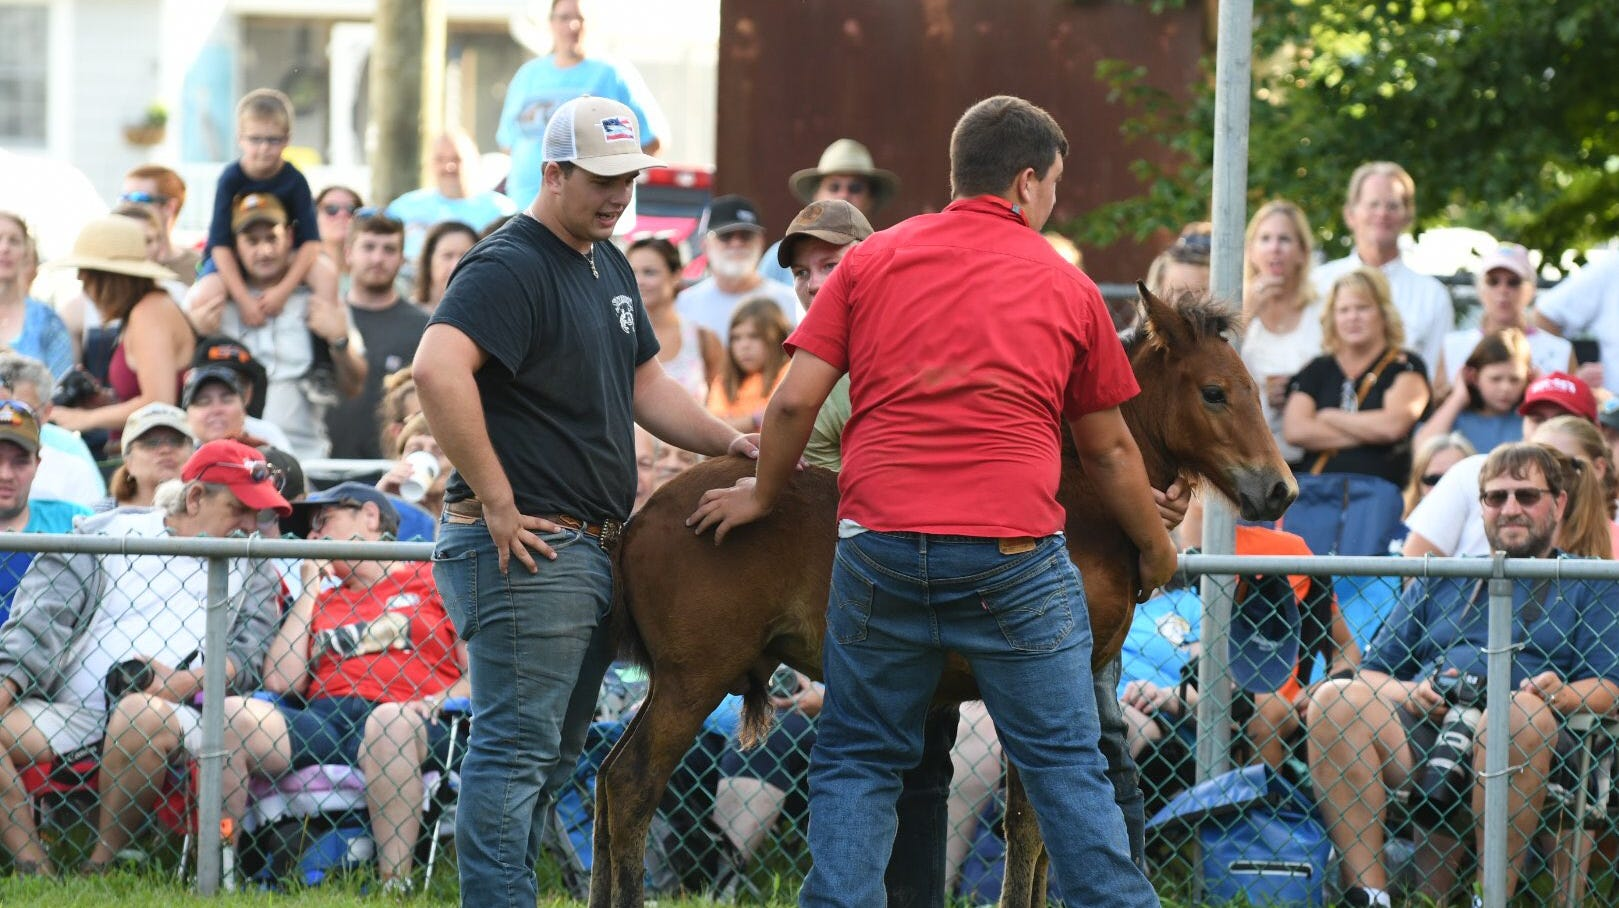 Chincoteague's big pony auction makes all kinds of dreams come true